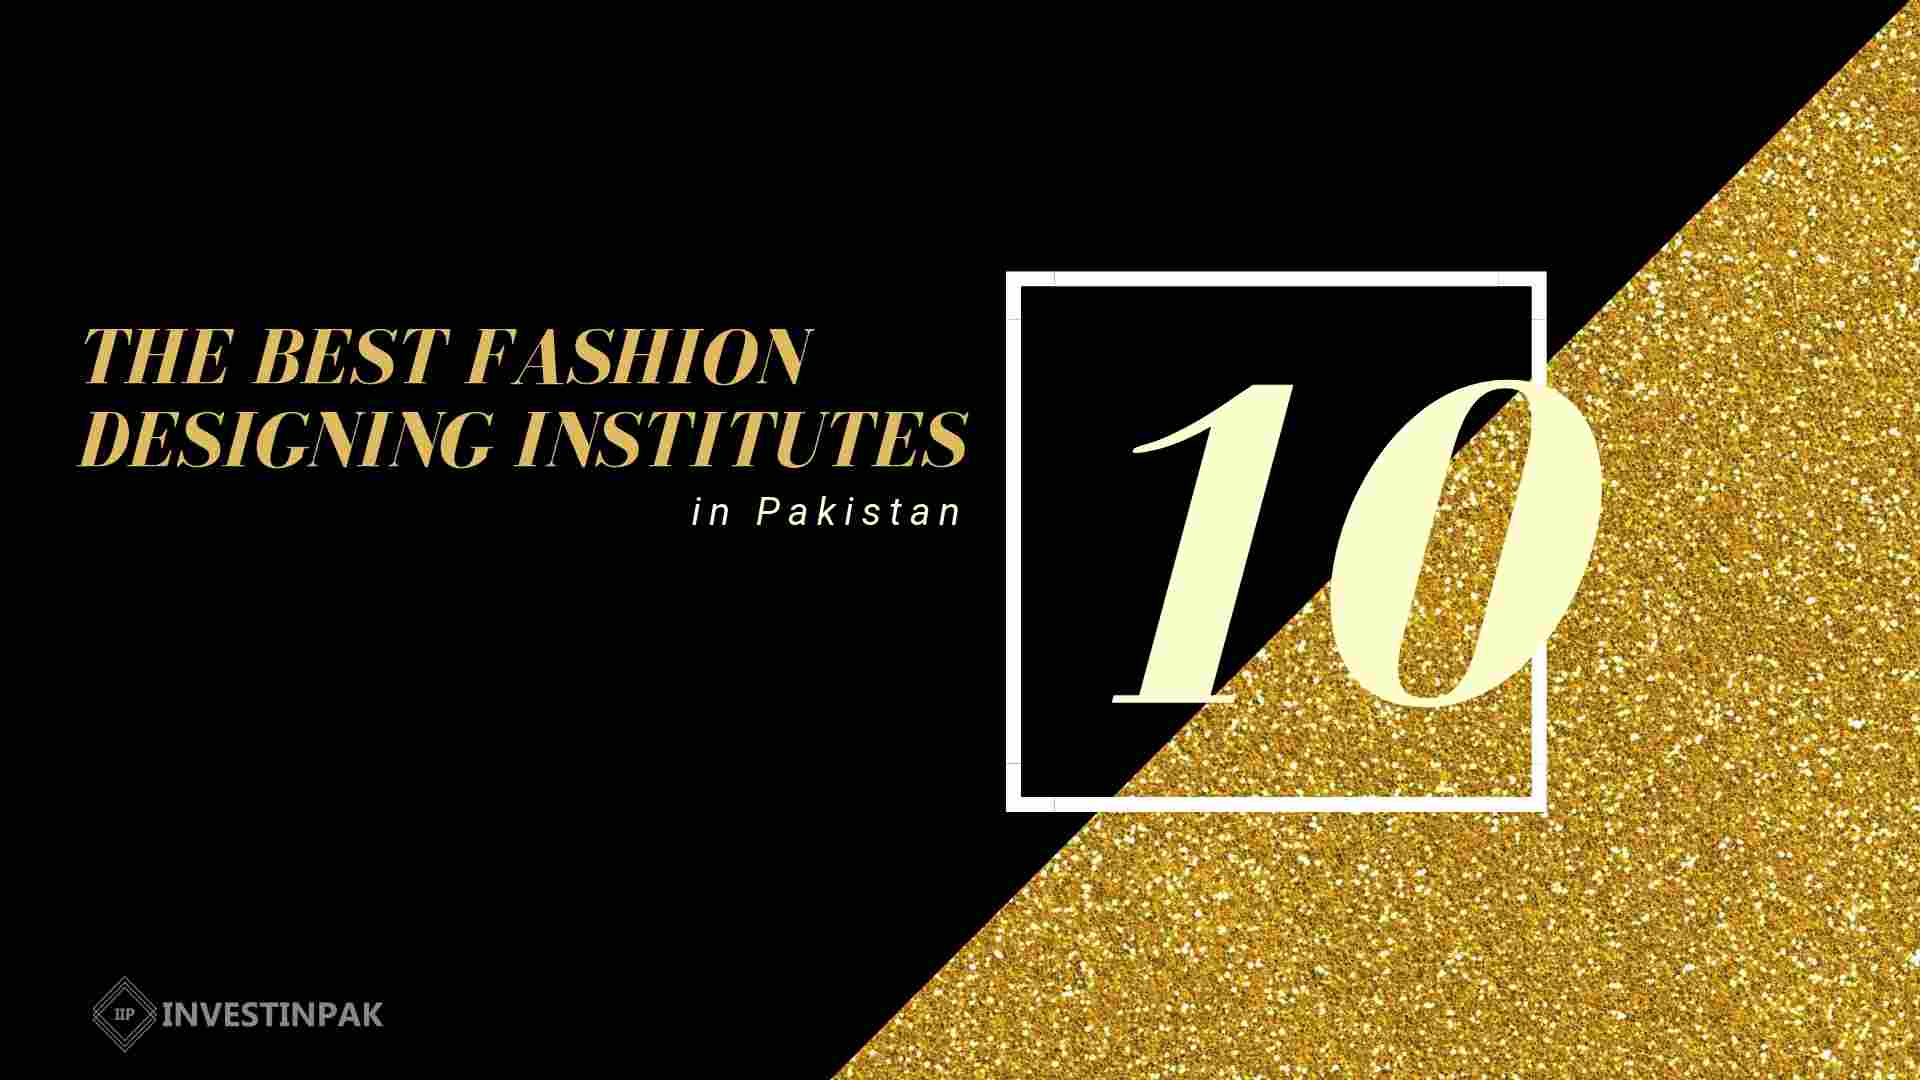 THE BEST FASHION DESIGNING INSTITUTES in pakistan